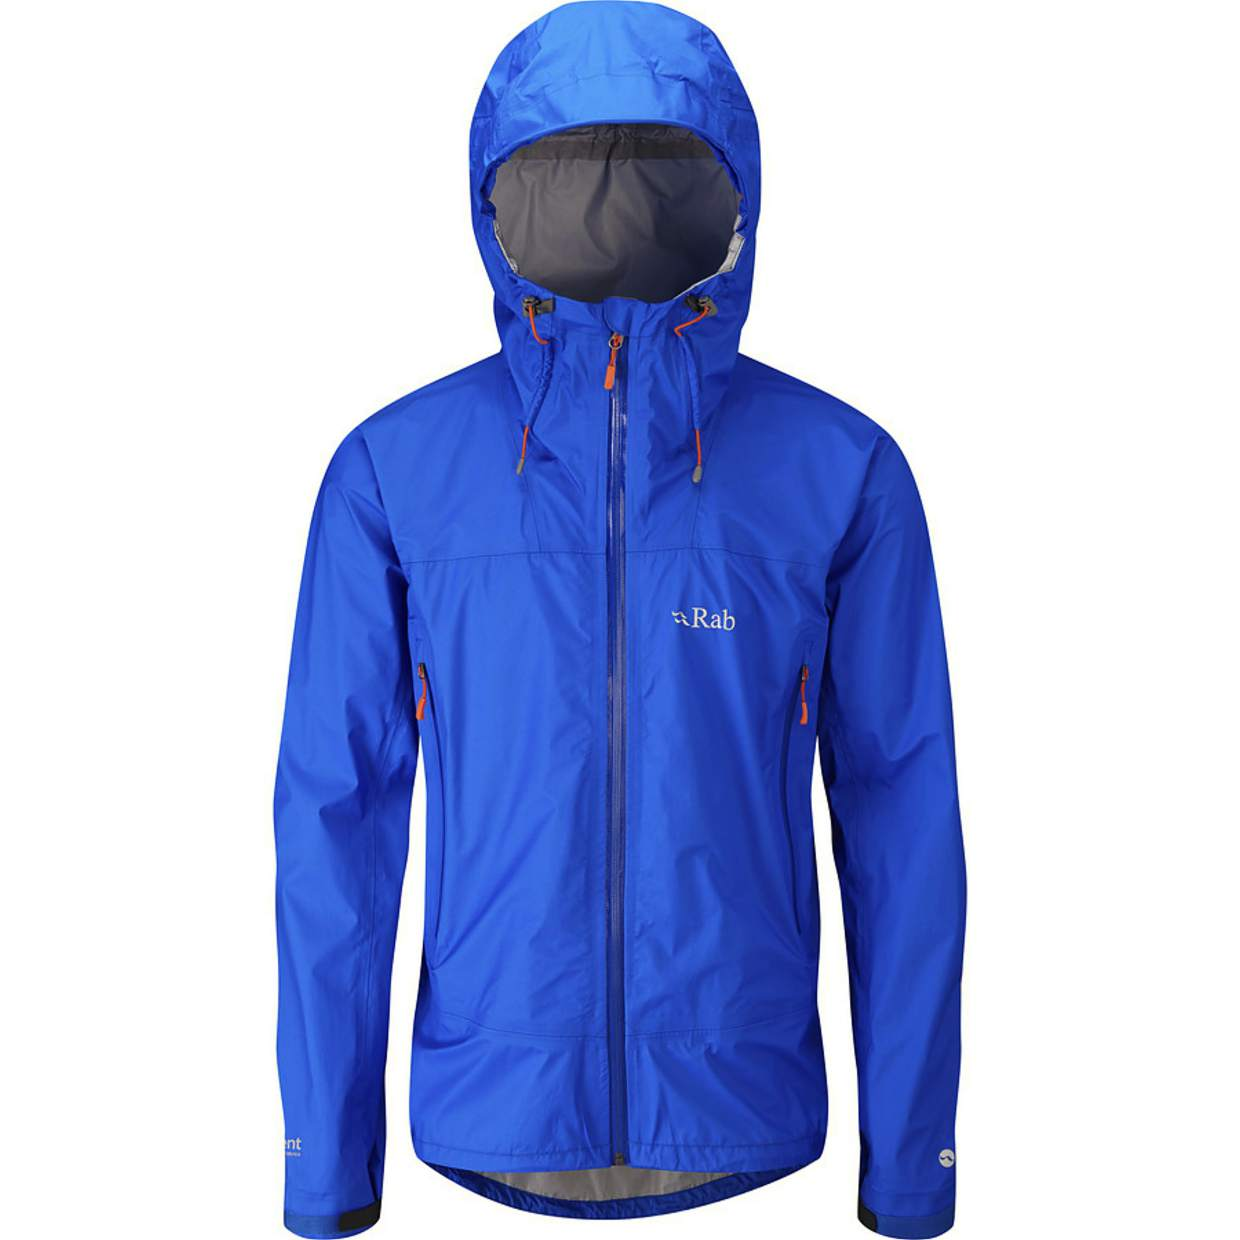 The Rab Muztag men's jacket.